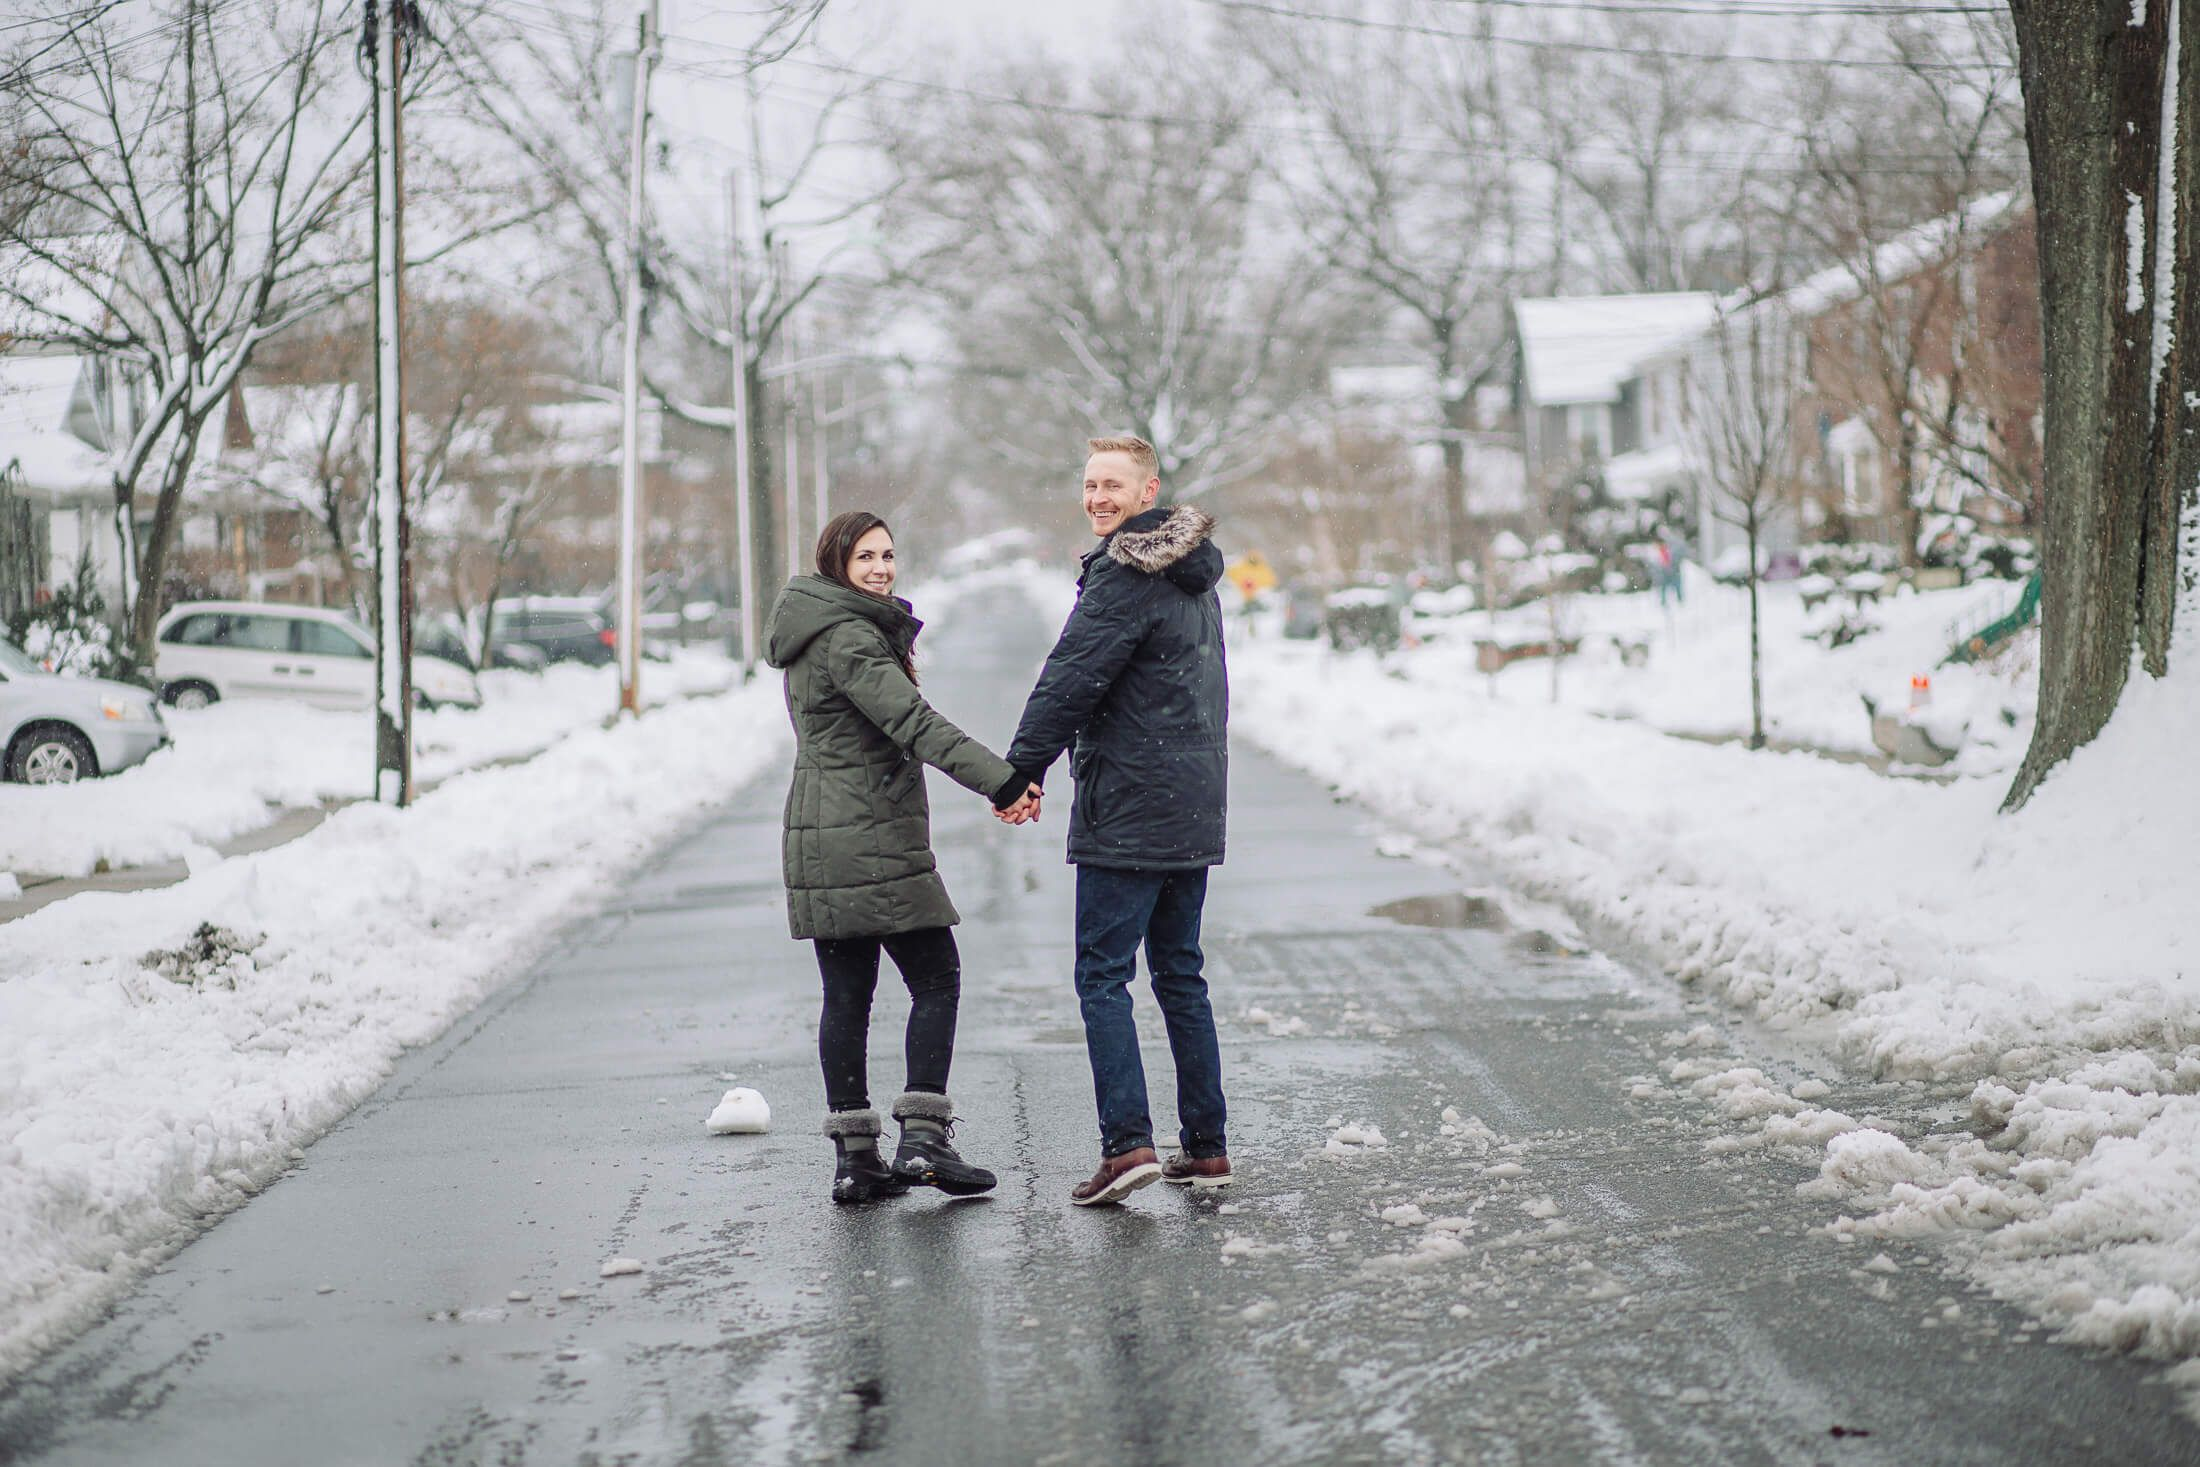 Snow winter engagement session in Collingswood, NJ.